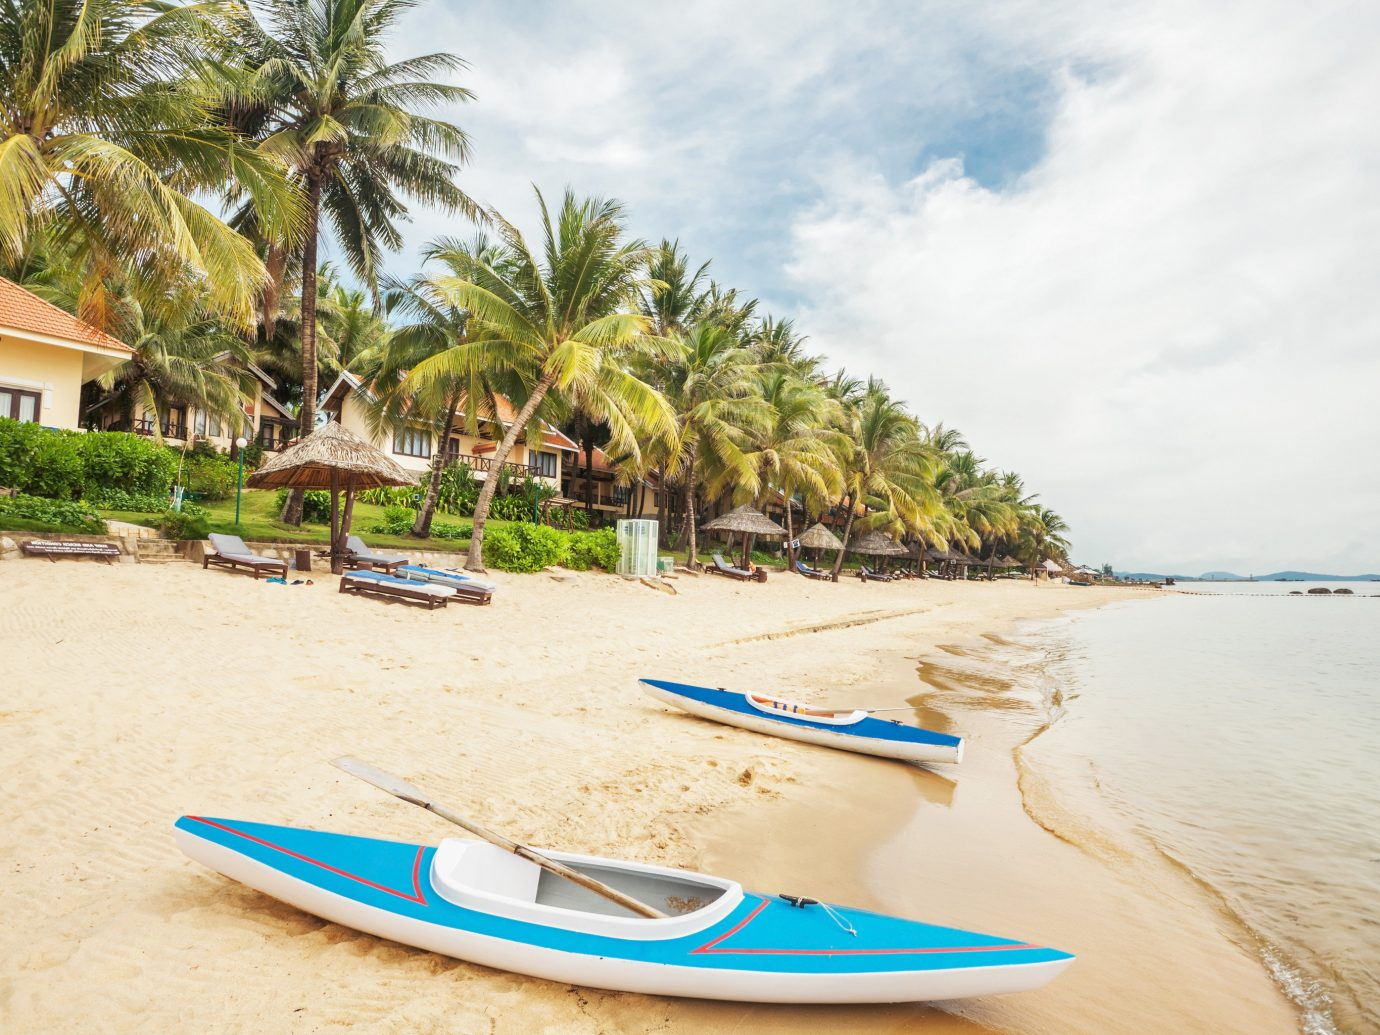 Secret Getaways Trip Ideas outdoor Beach sky surfing tree ground water sand body of water Sea vehicle vacation shore surfboard surfing equipment and supplies caribbean Boat Nature Coast bay tropics boating boarding paddle sandy palm lined